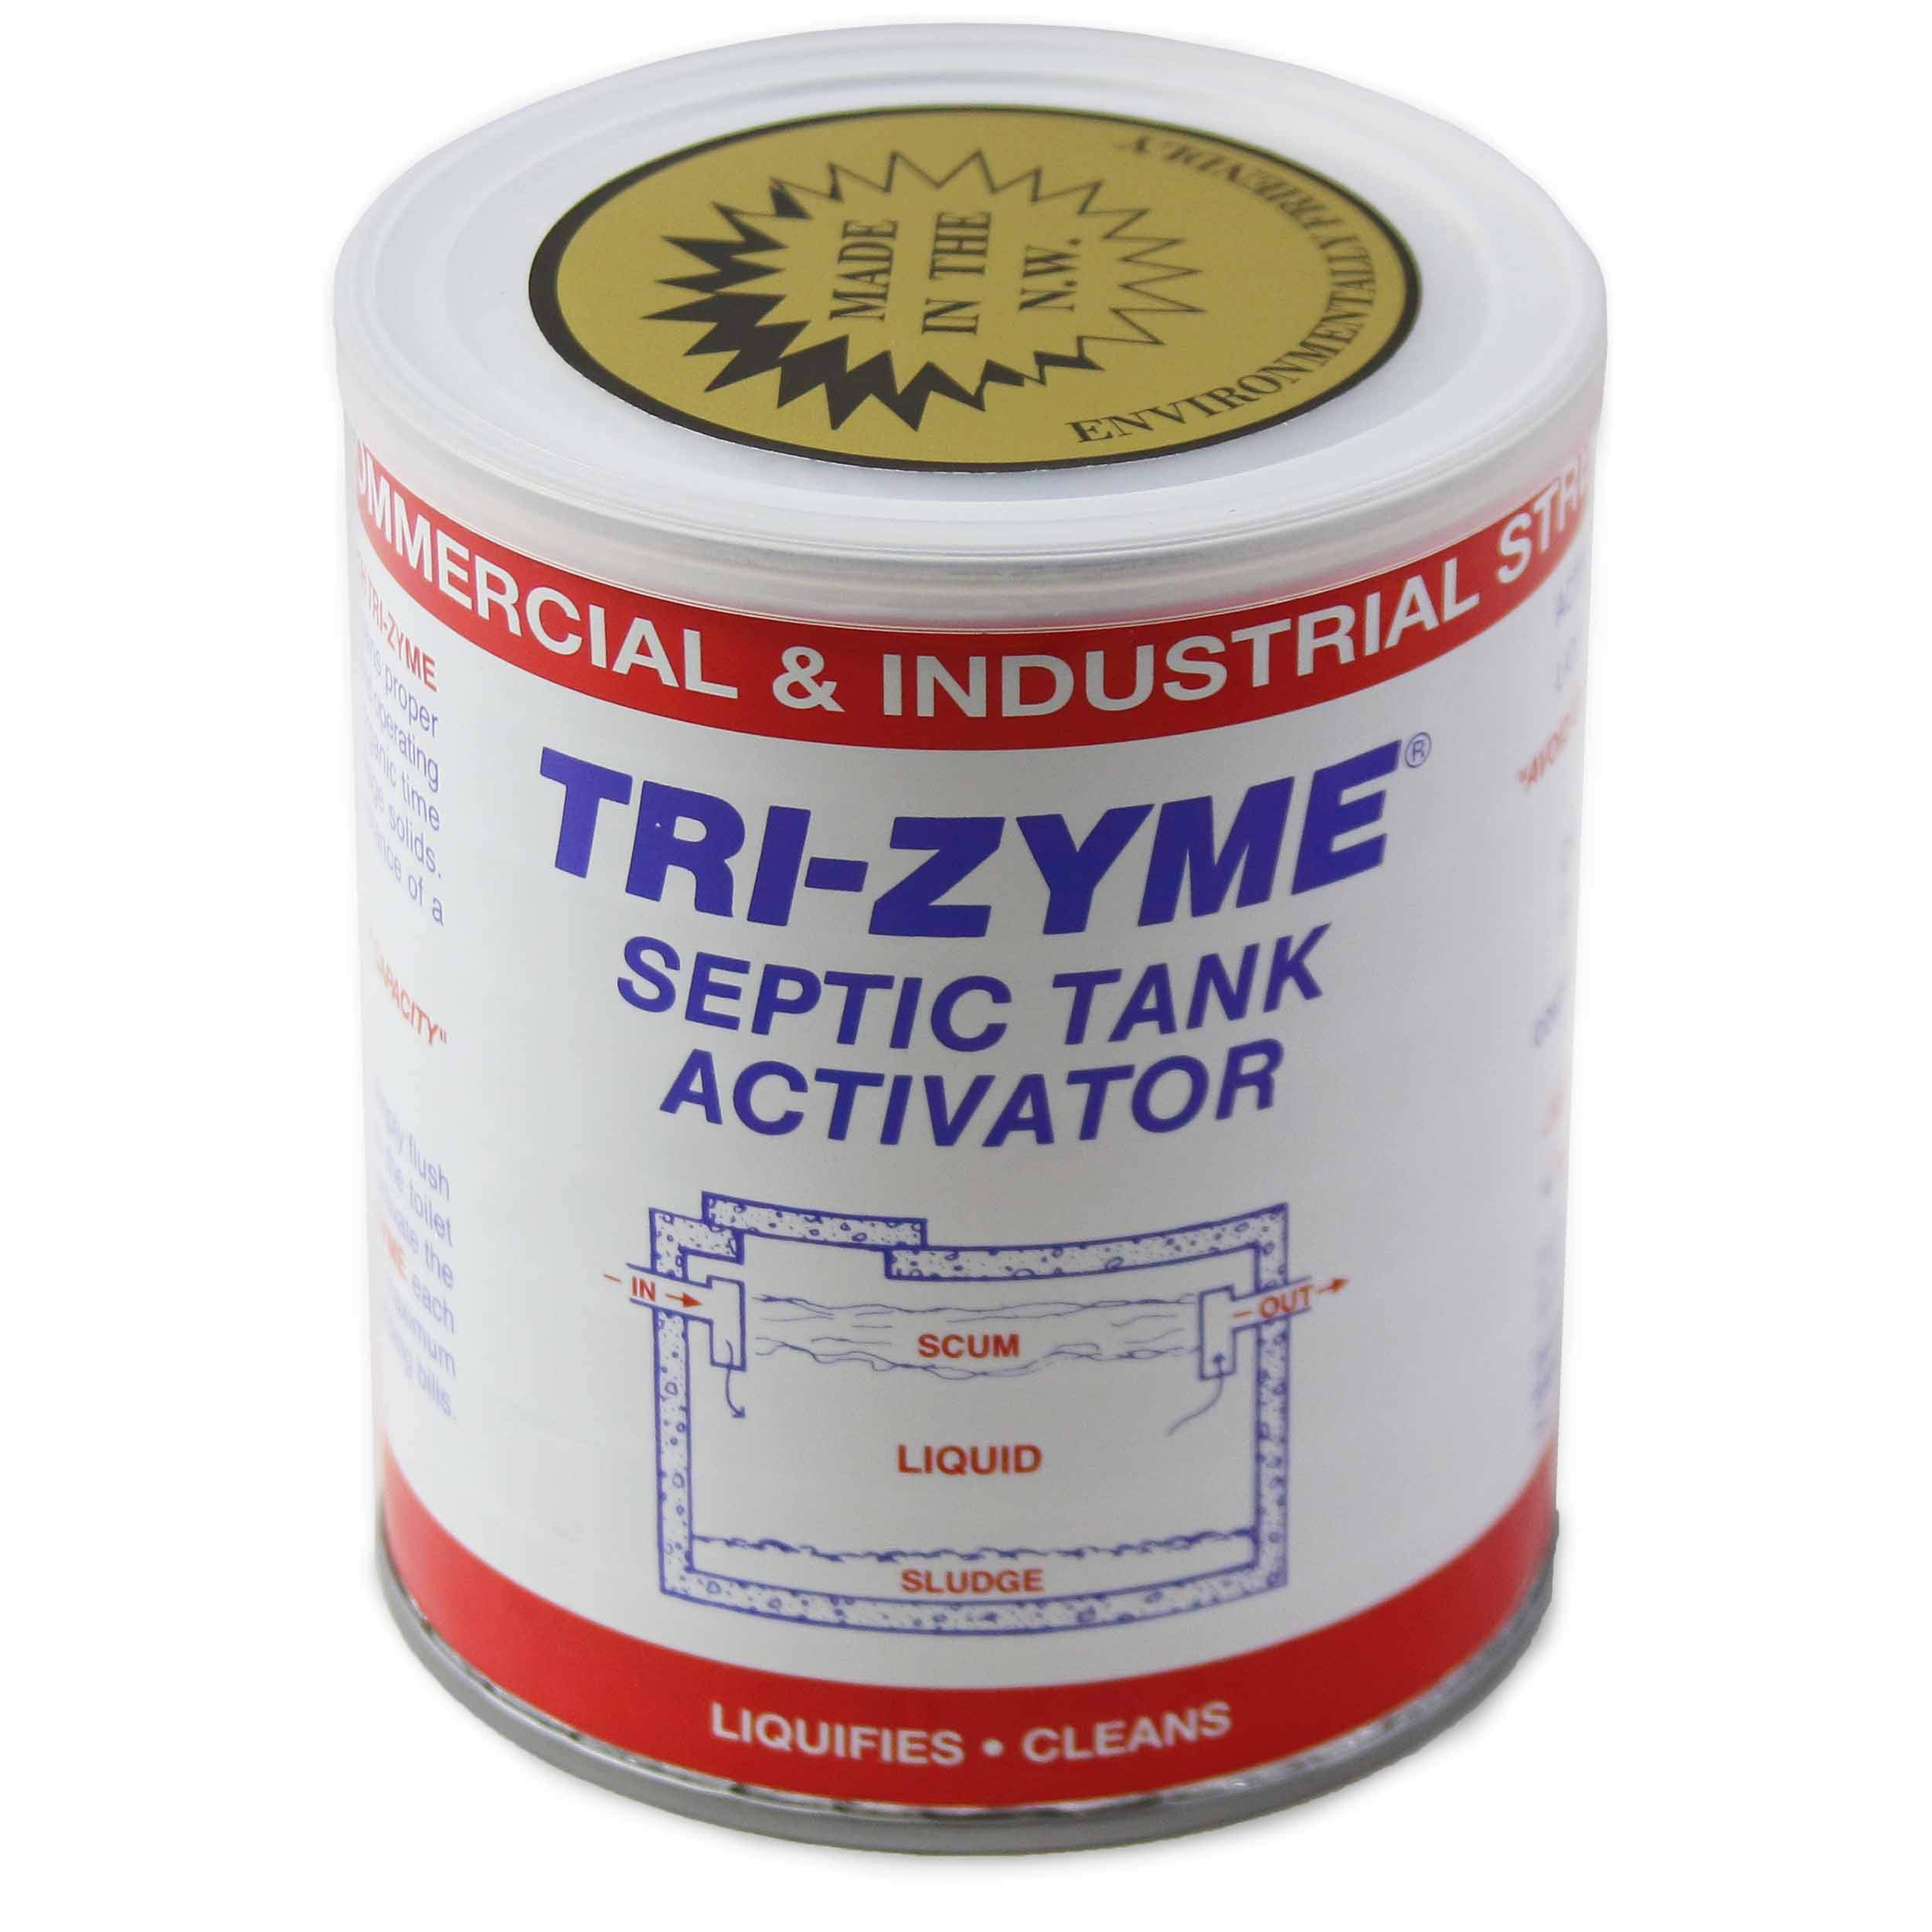 Tri-Zyme - Commercial and Industrial Strength Septic Tank Activator